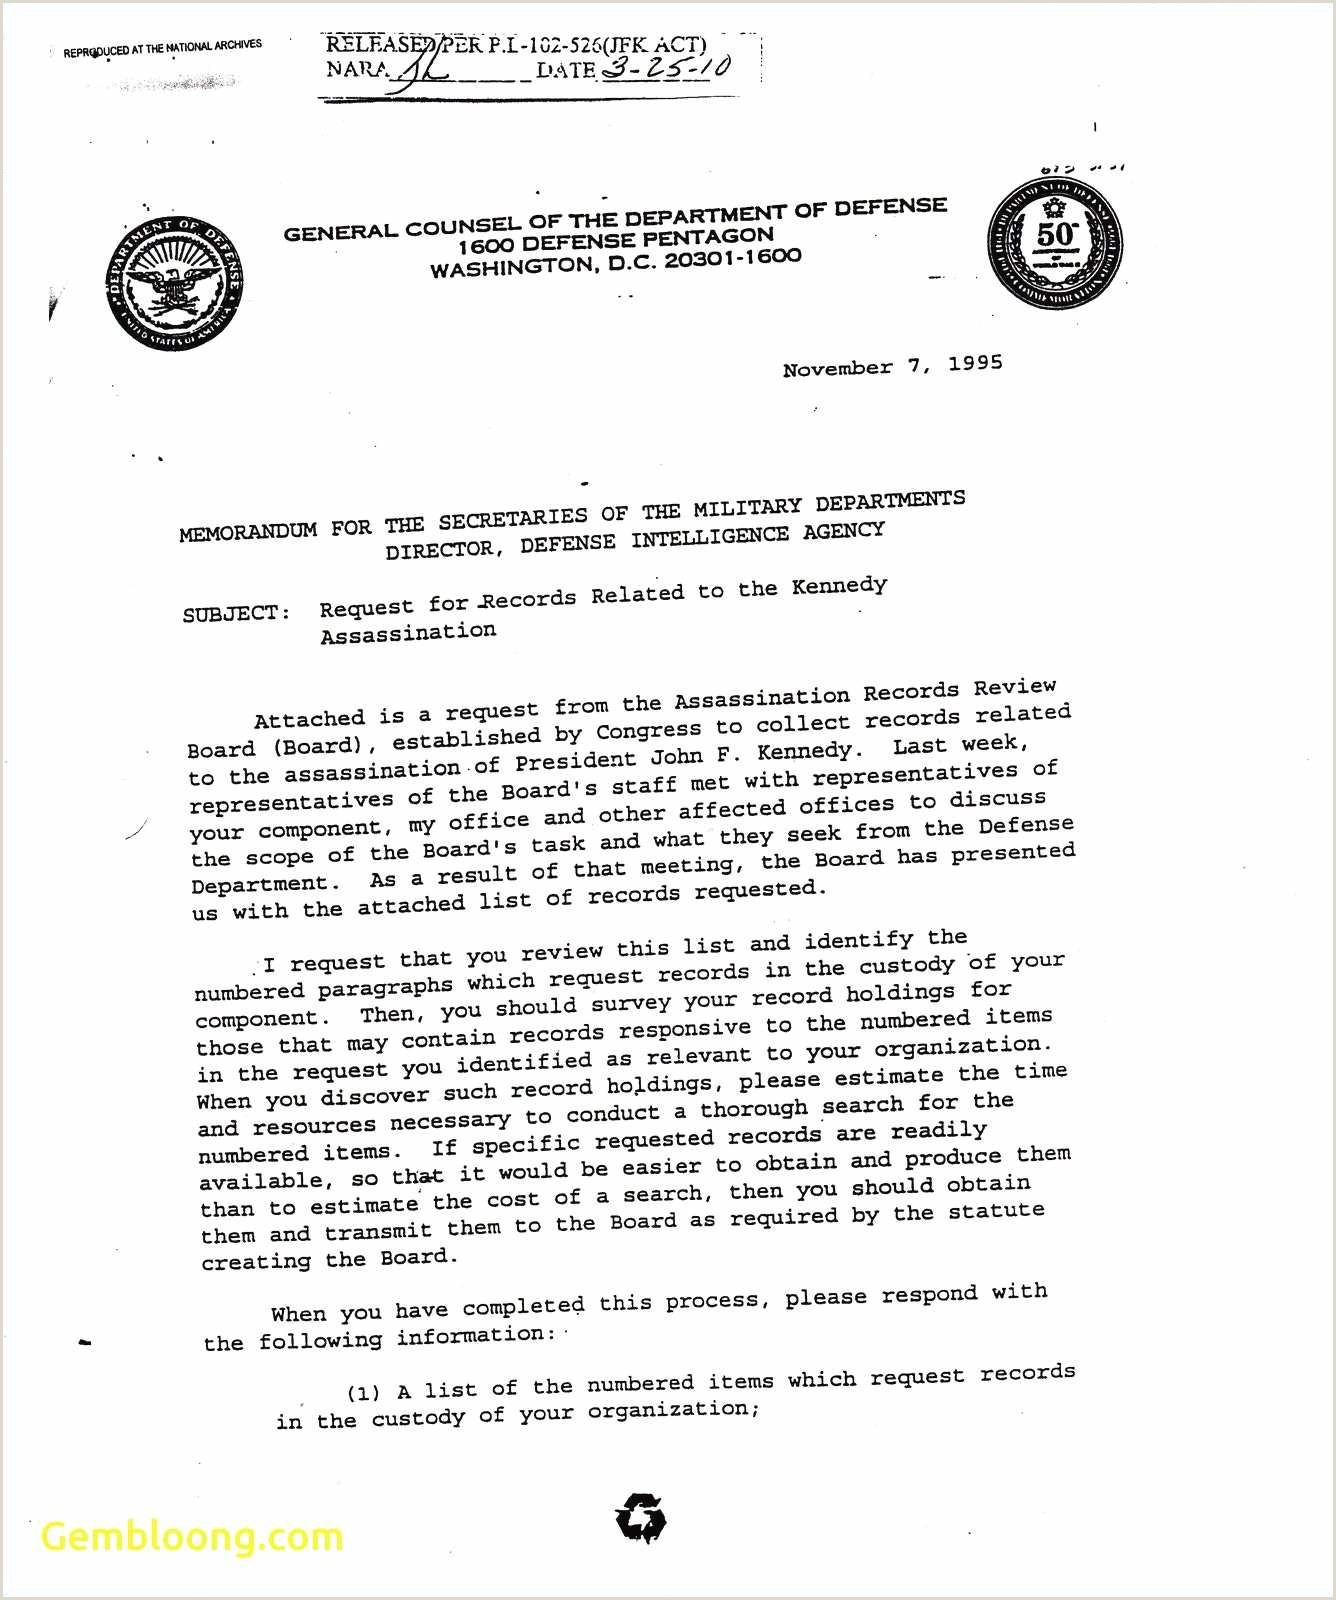 Air force Memorandum Template Air force Mfr Template Memo formats Lease Template Internal